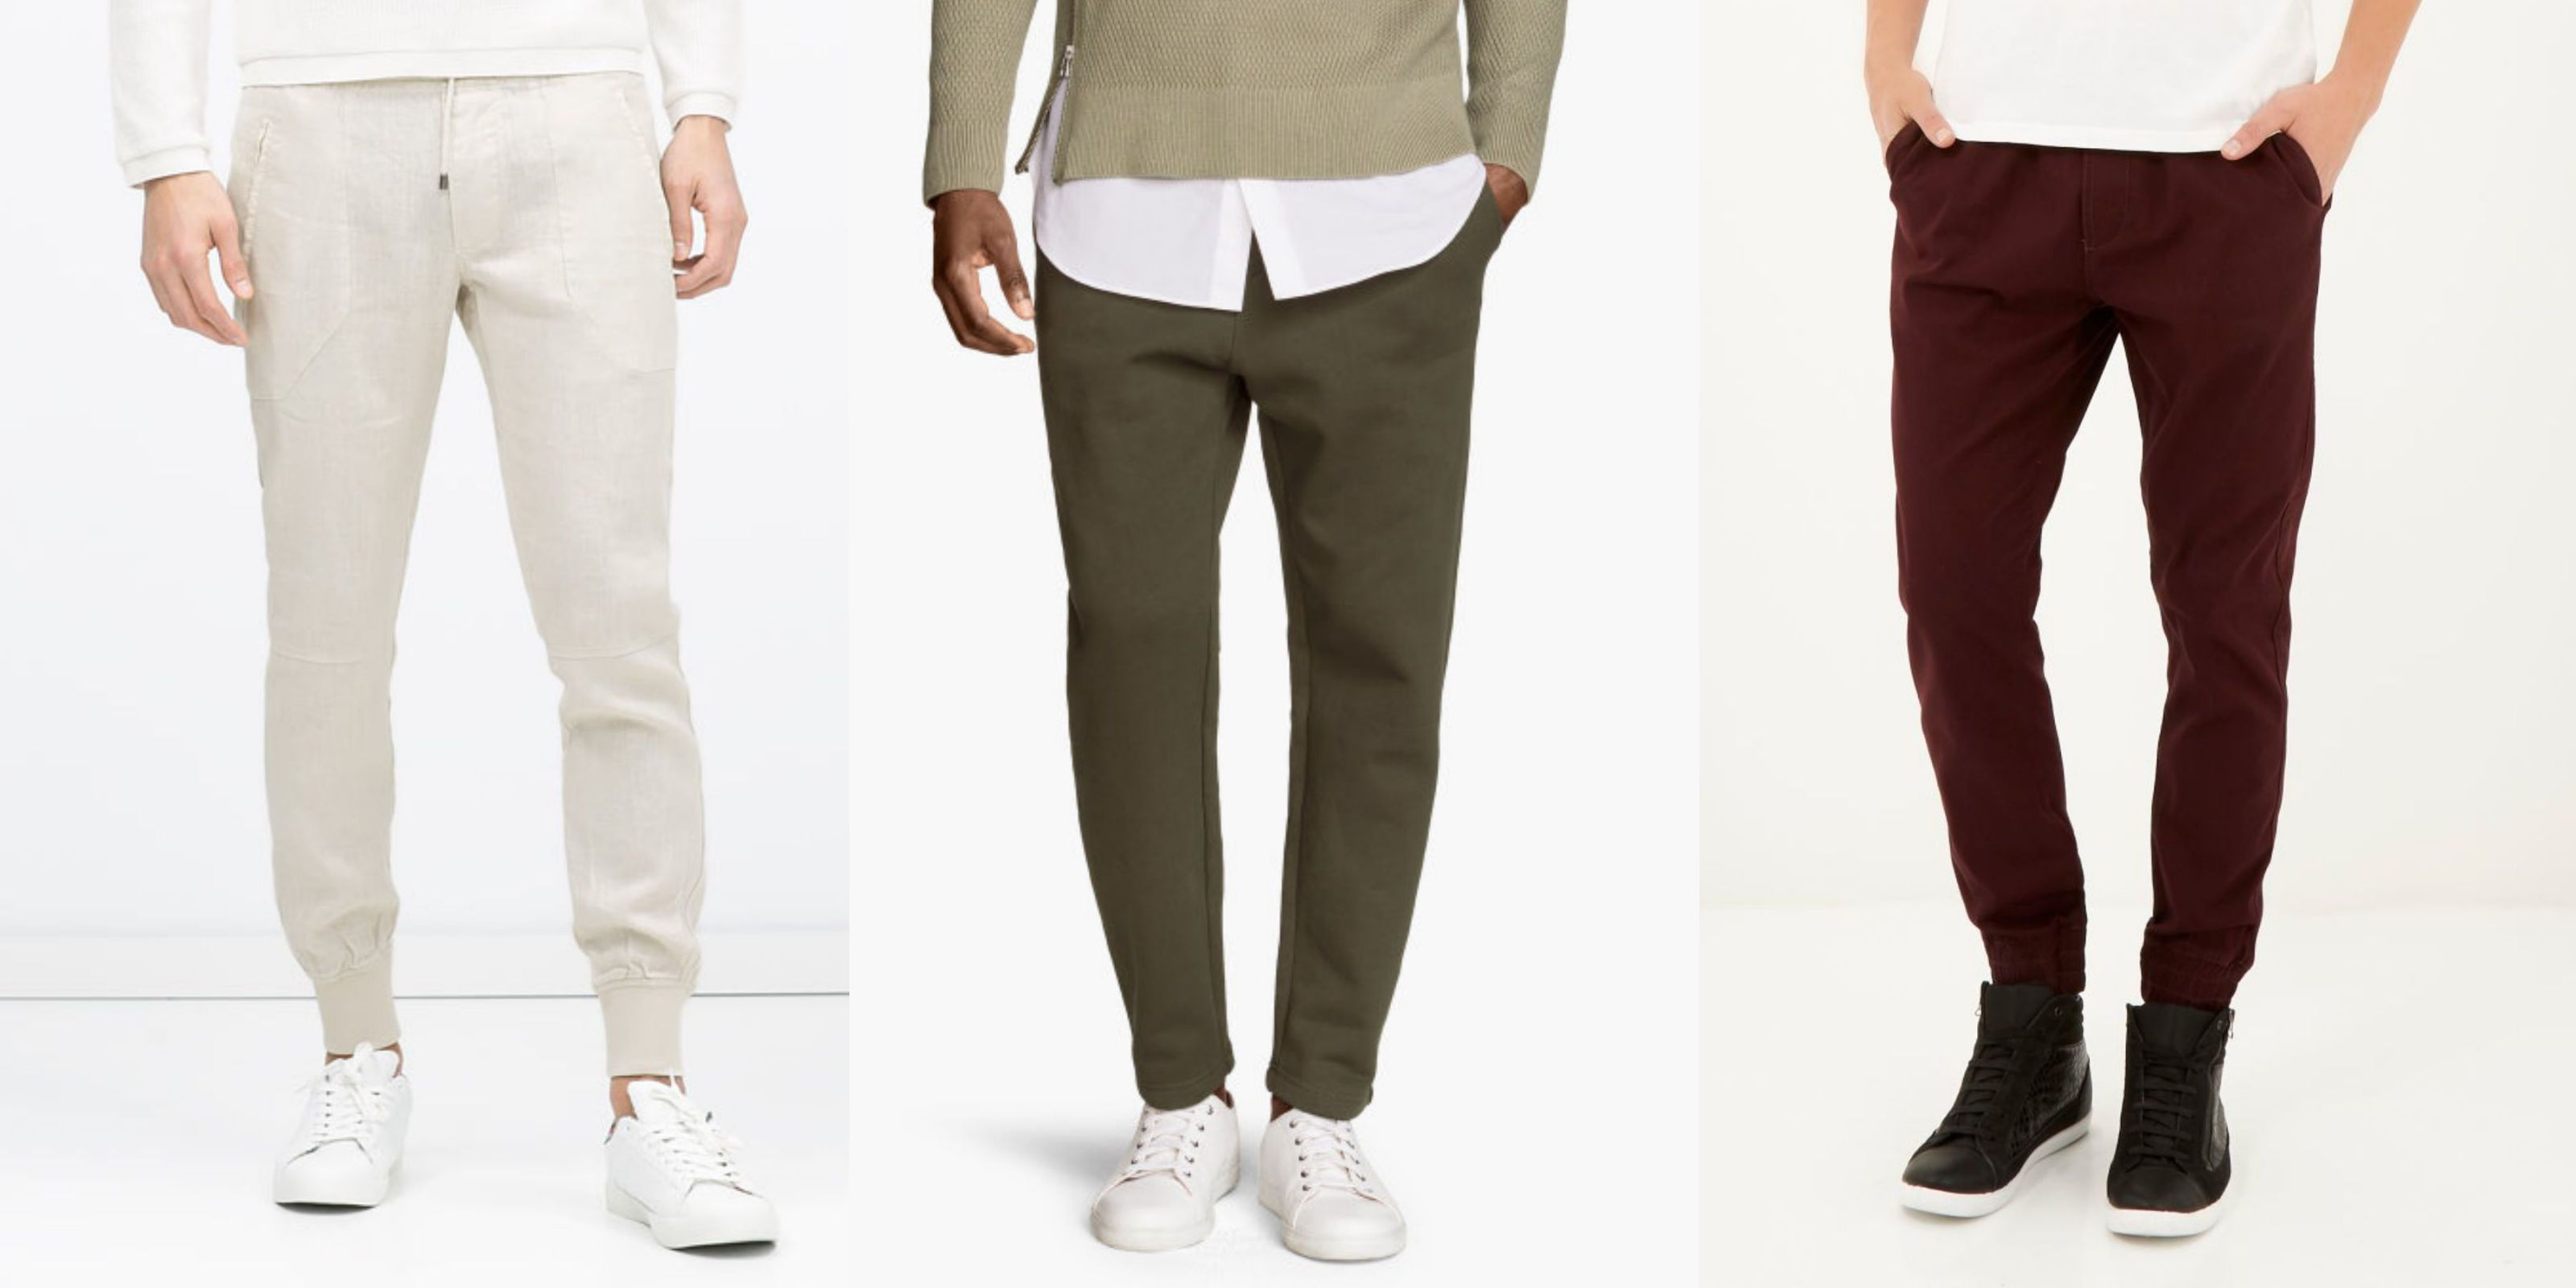 10 Tailored Jogging Pants Under $100